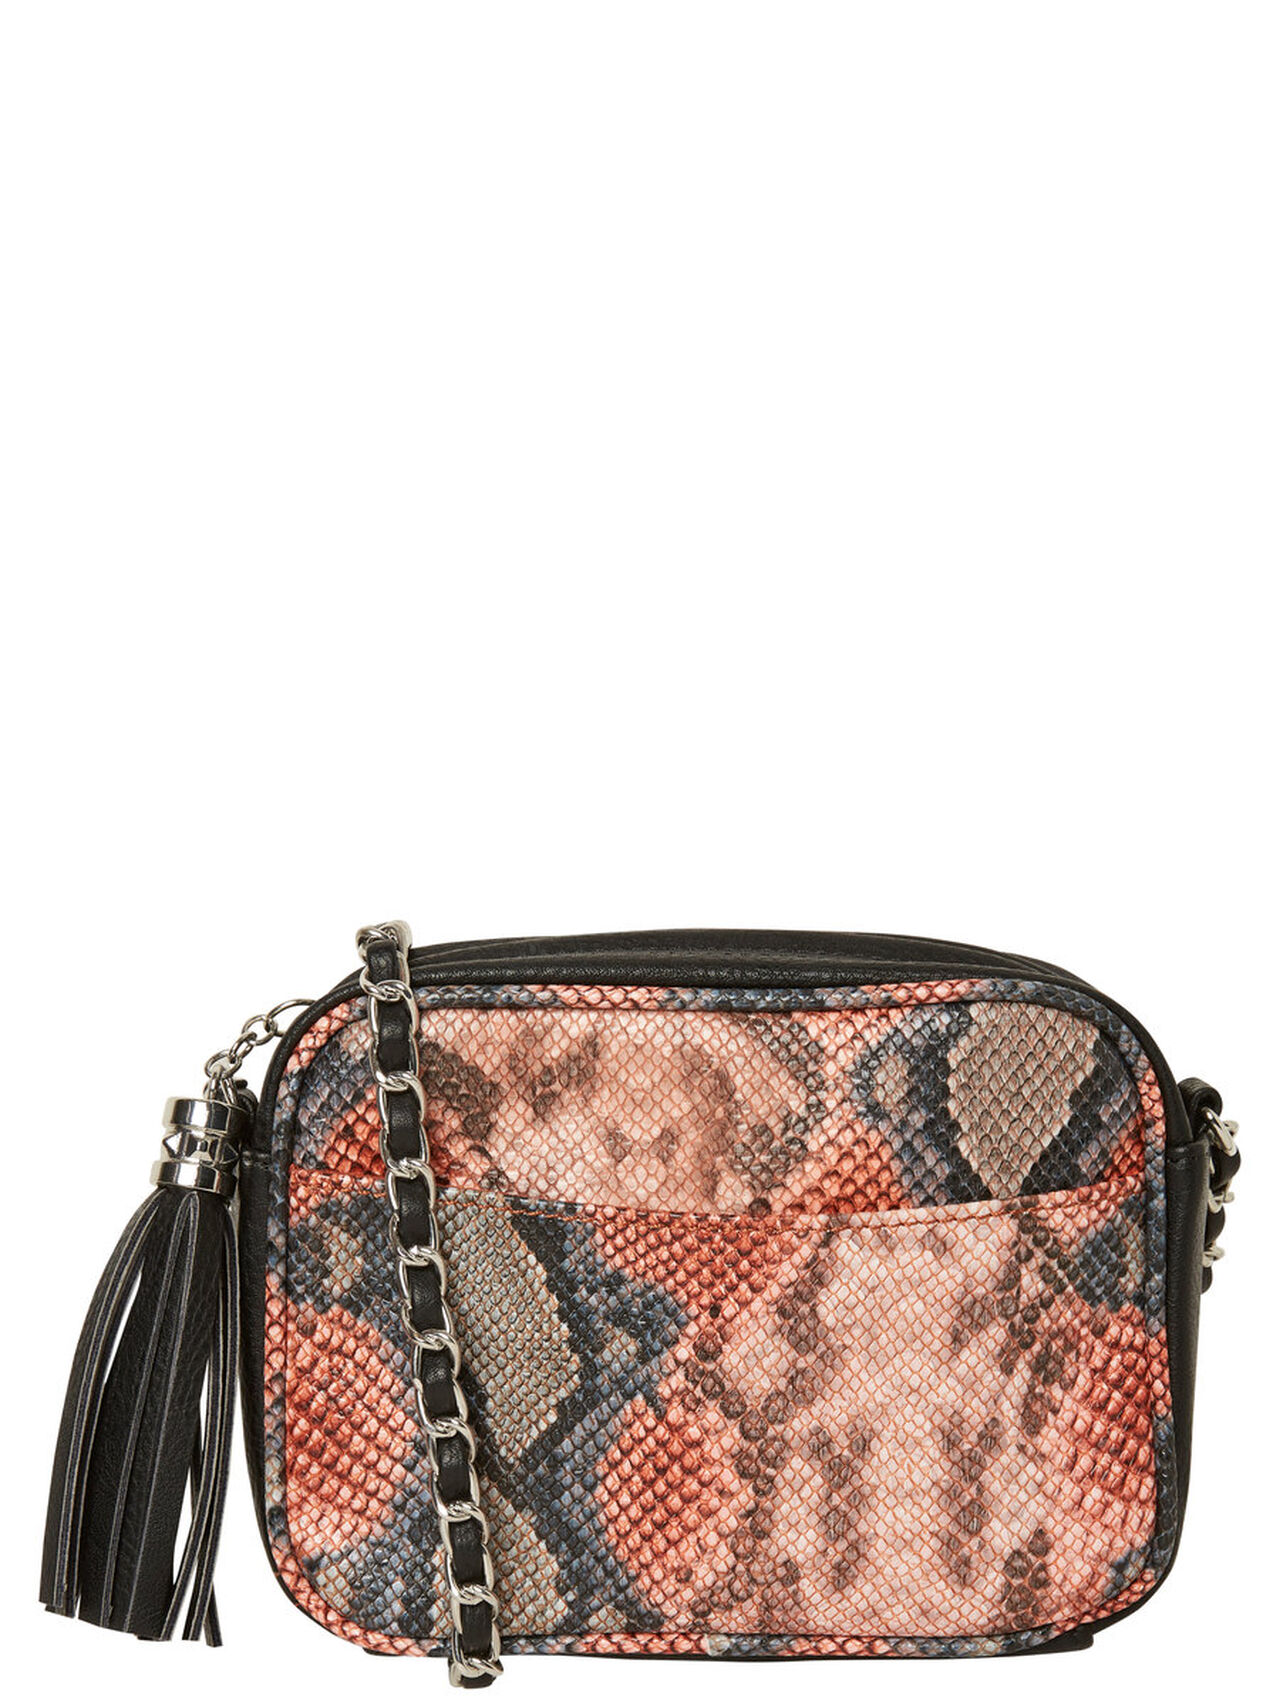 VERO MODA Small Crossbody Bag Women Red